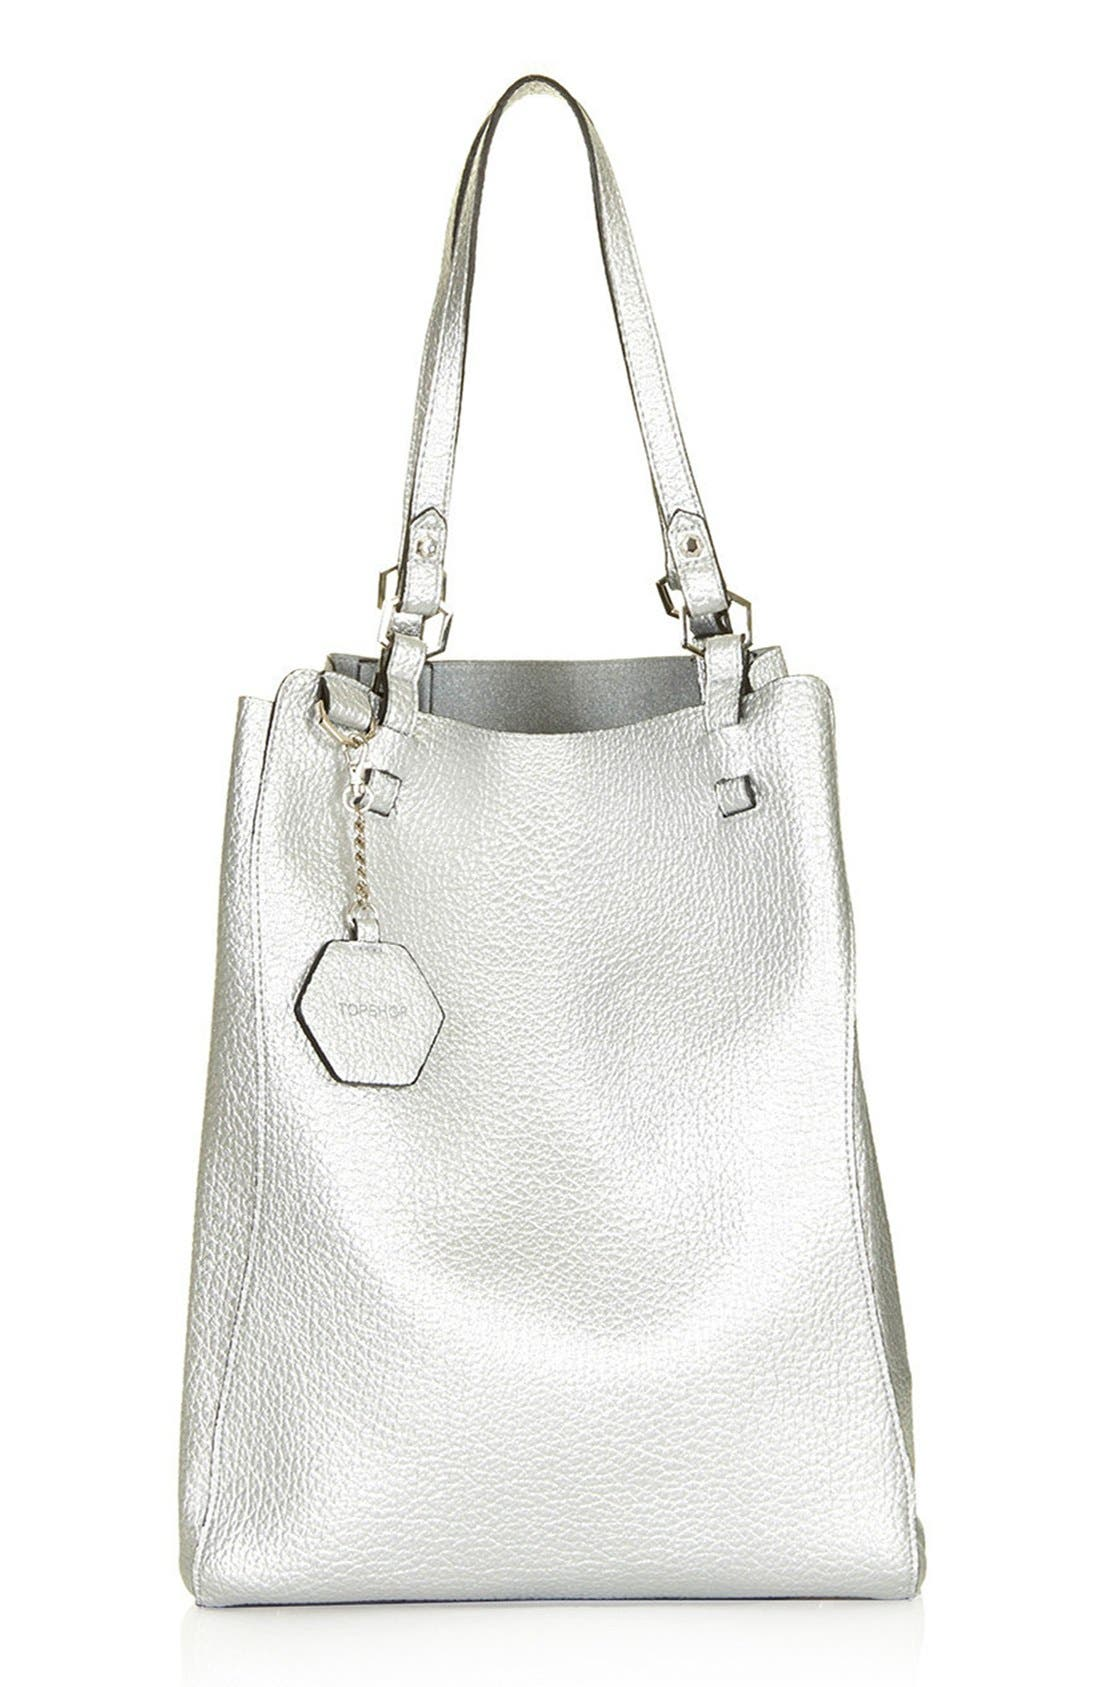 Alternate Image 1 Selected - Topshop 'Hex' Faux Leather Tote